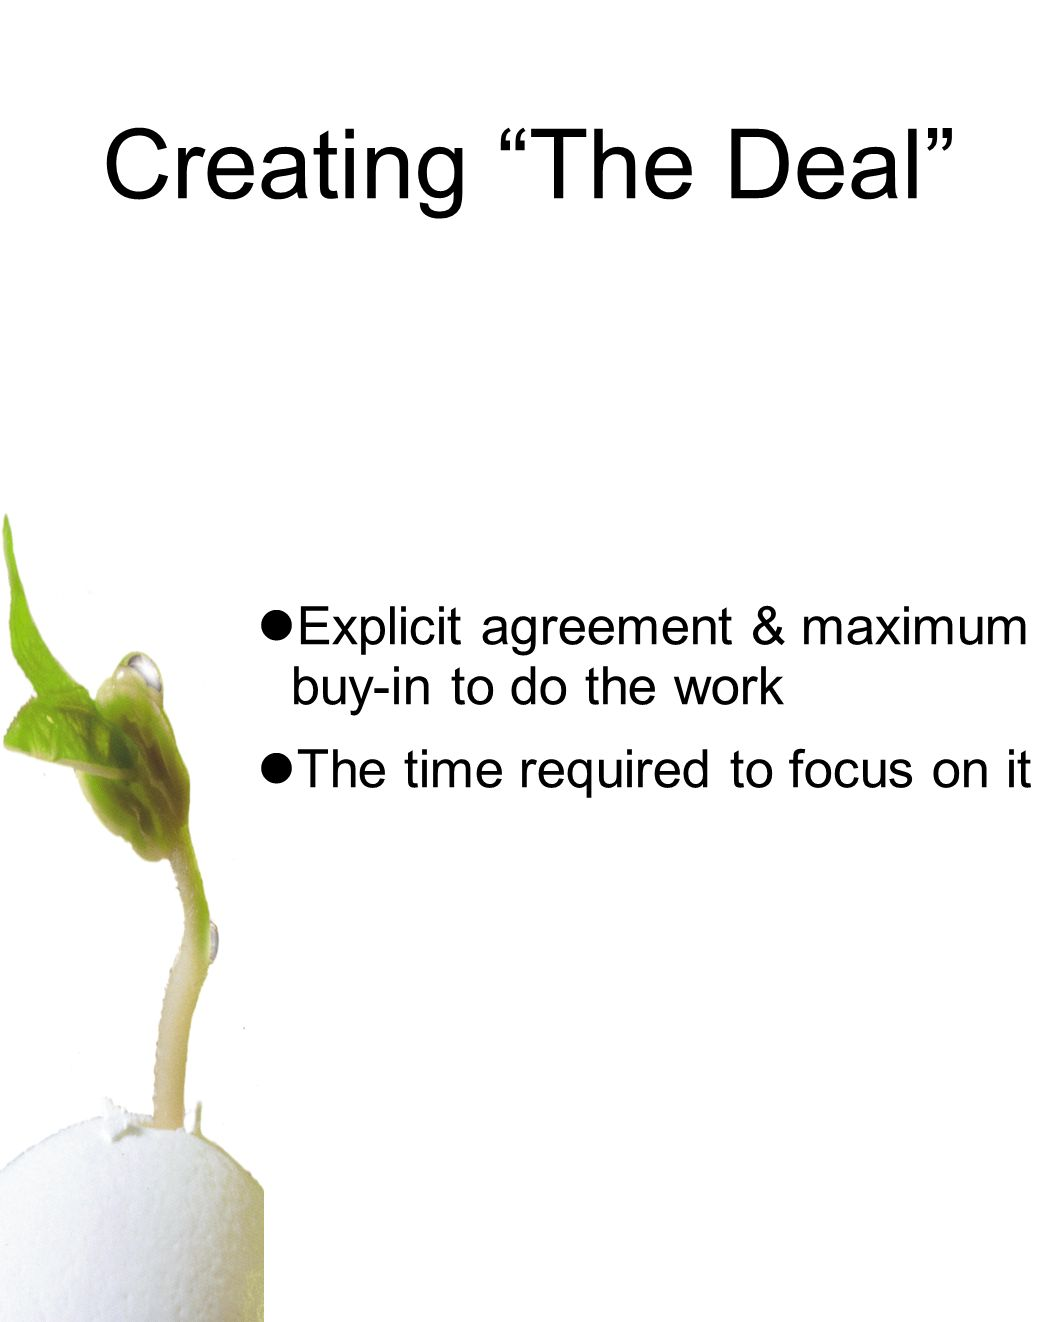 Creating The Deal Explicit agreement & maximum buy-in to do the work The time required to focus on it